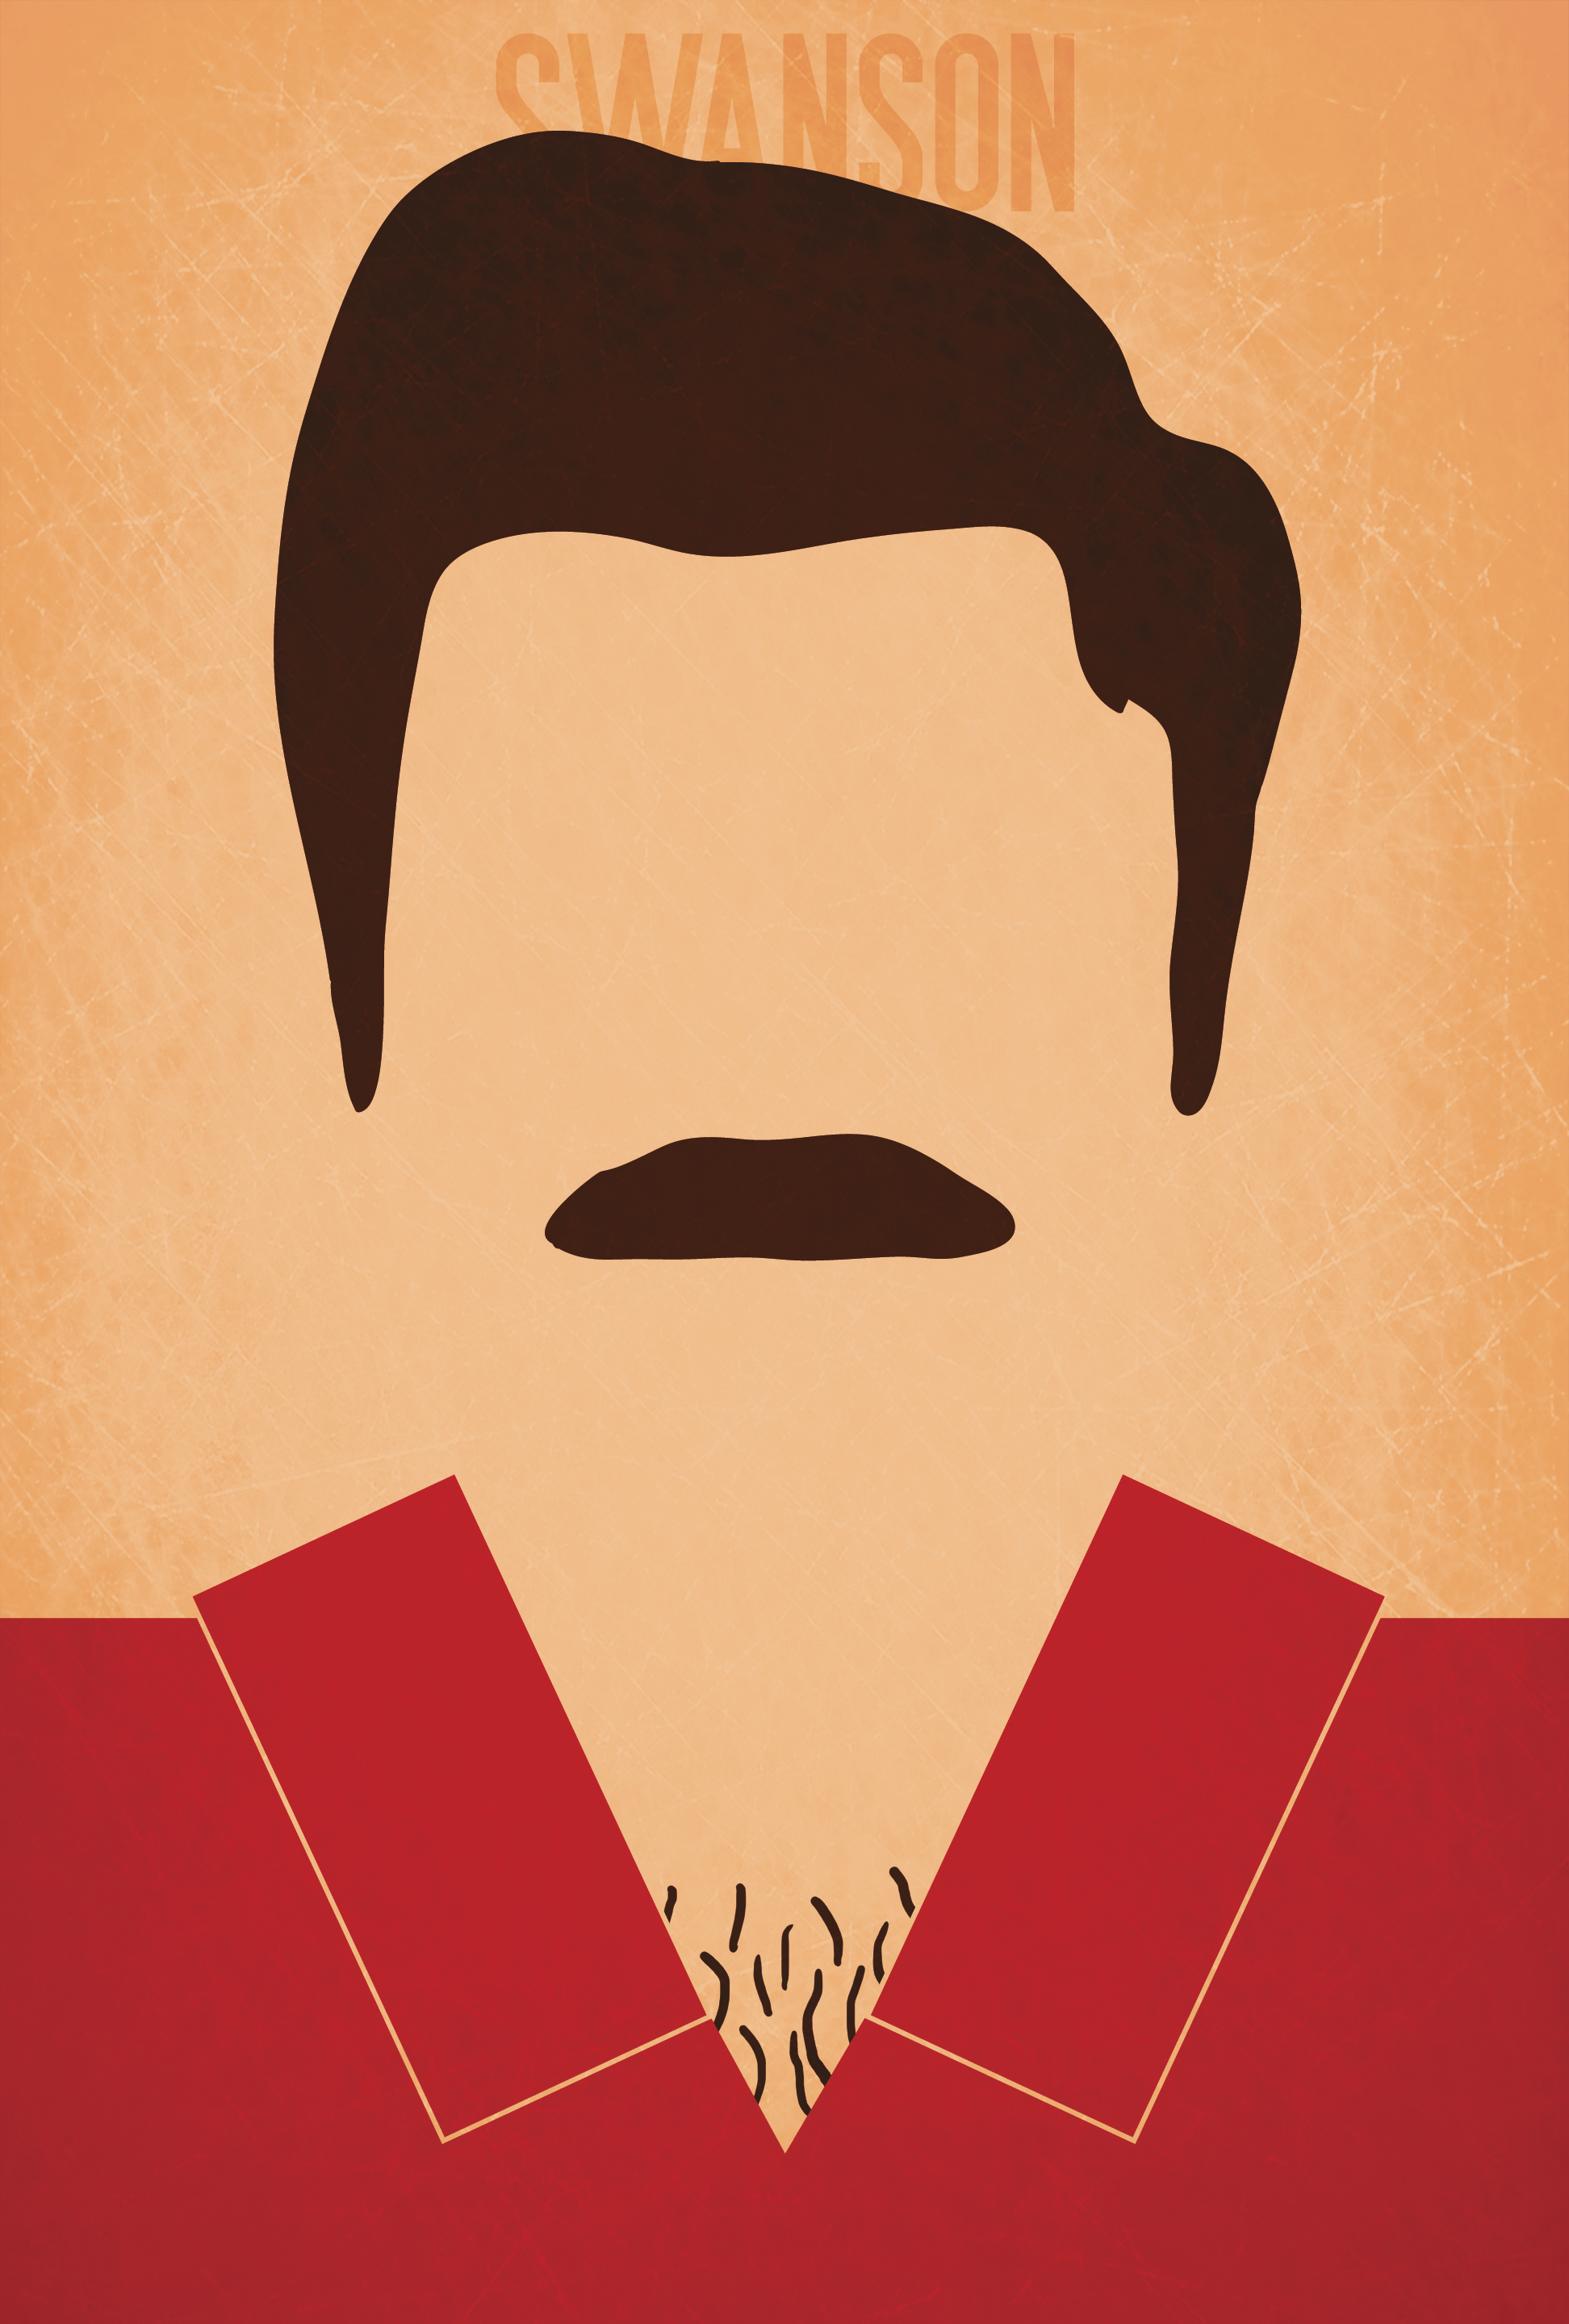 Ron Swanson - Minimalist Parks and Recreation Poster